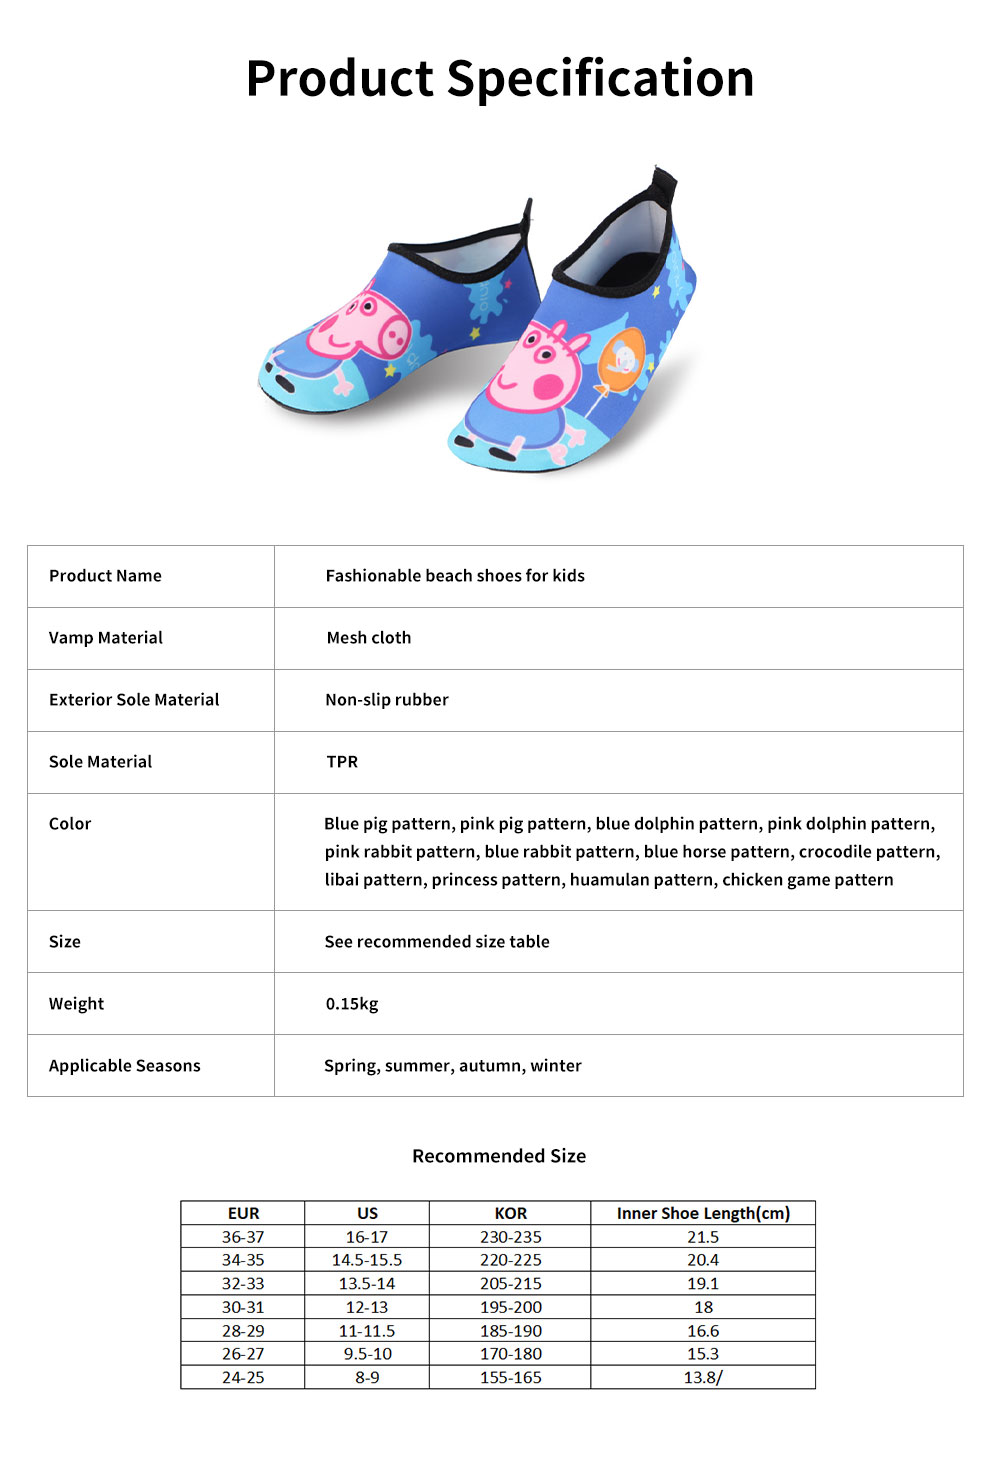 Fashionable Quick-dry Beach Shoes for Kids, Children's Breathable Beach Shoes for Outdoor Activity Swimming Shoes 7